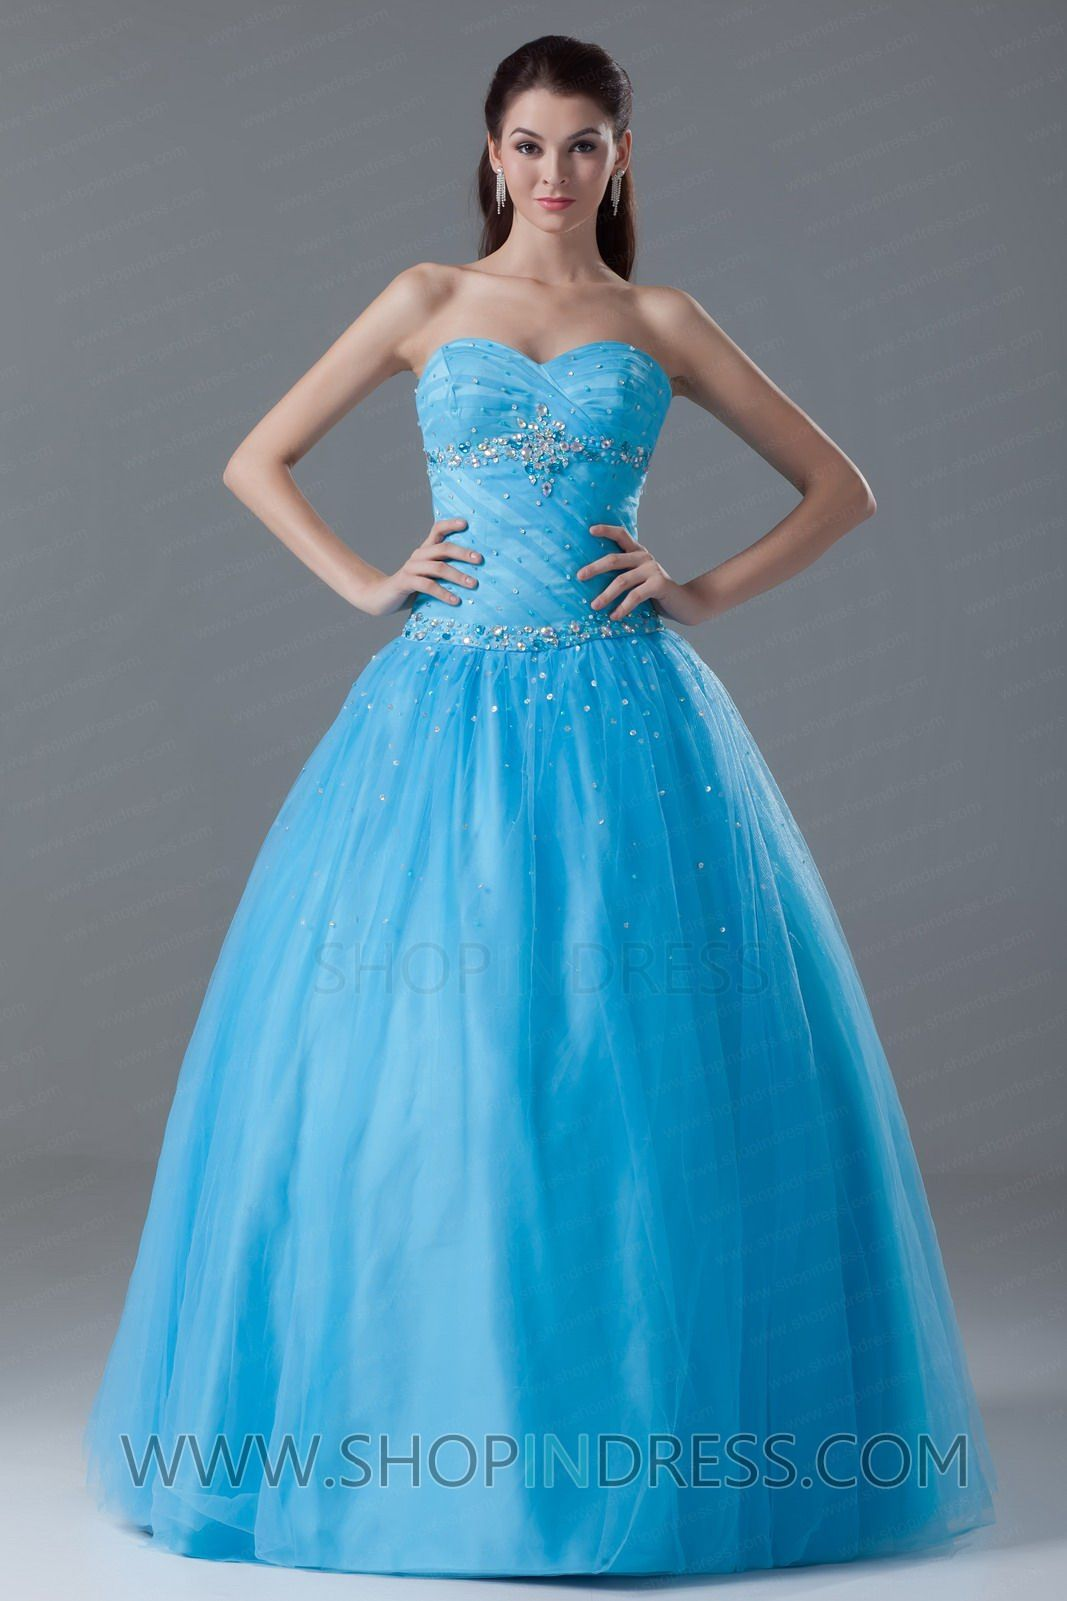 prom dresses at sears - Google Search That's right girls...prom's ...